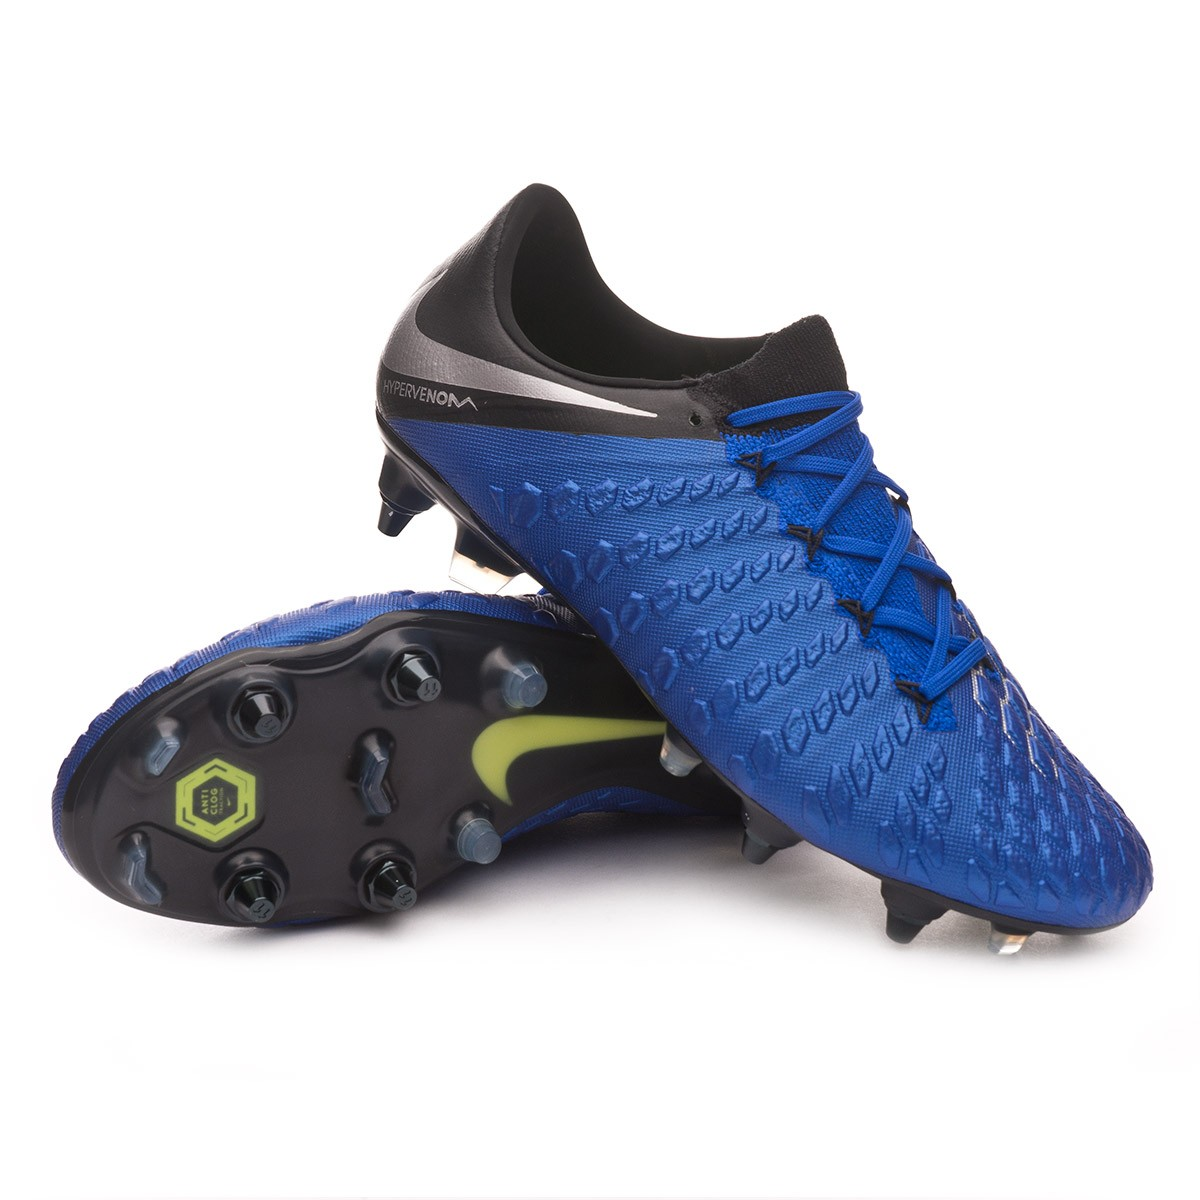 9aef7b89c42 Nike Hypervenom Phantom III Elite Anti-Clog SG-Pro Football Boots. Racer  blue-Metallic ...